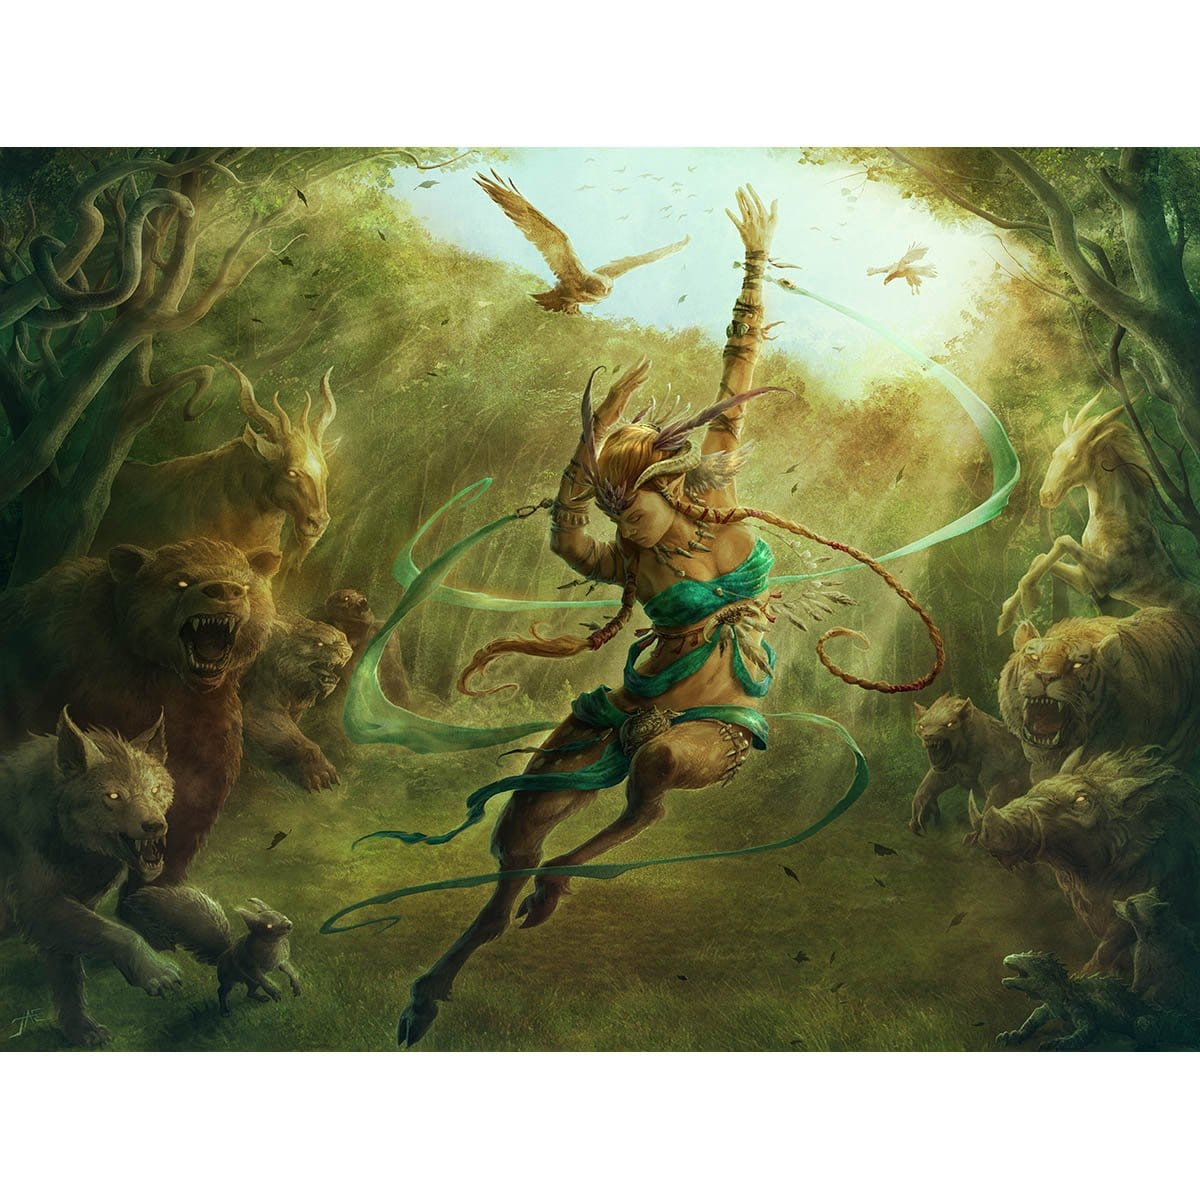 Satyr Grovedancer Print - Print - Original Magic Art - Accessories for Magic the Gathering and other card games